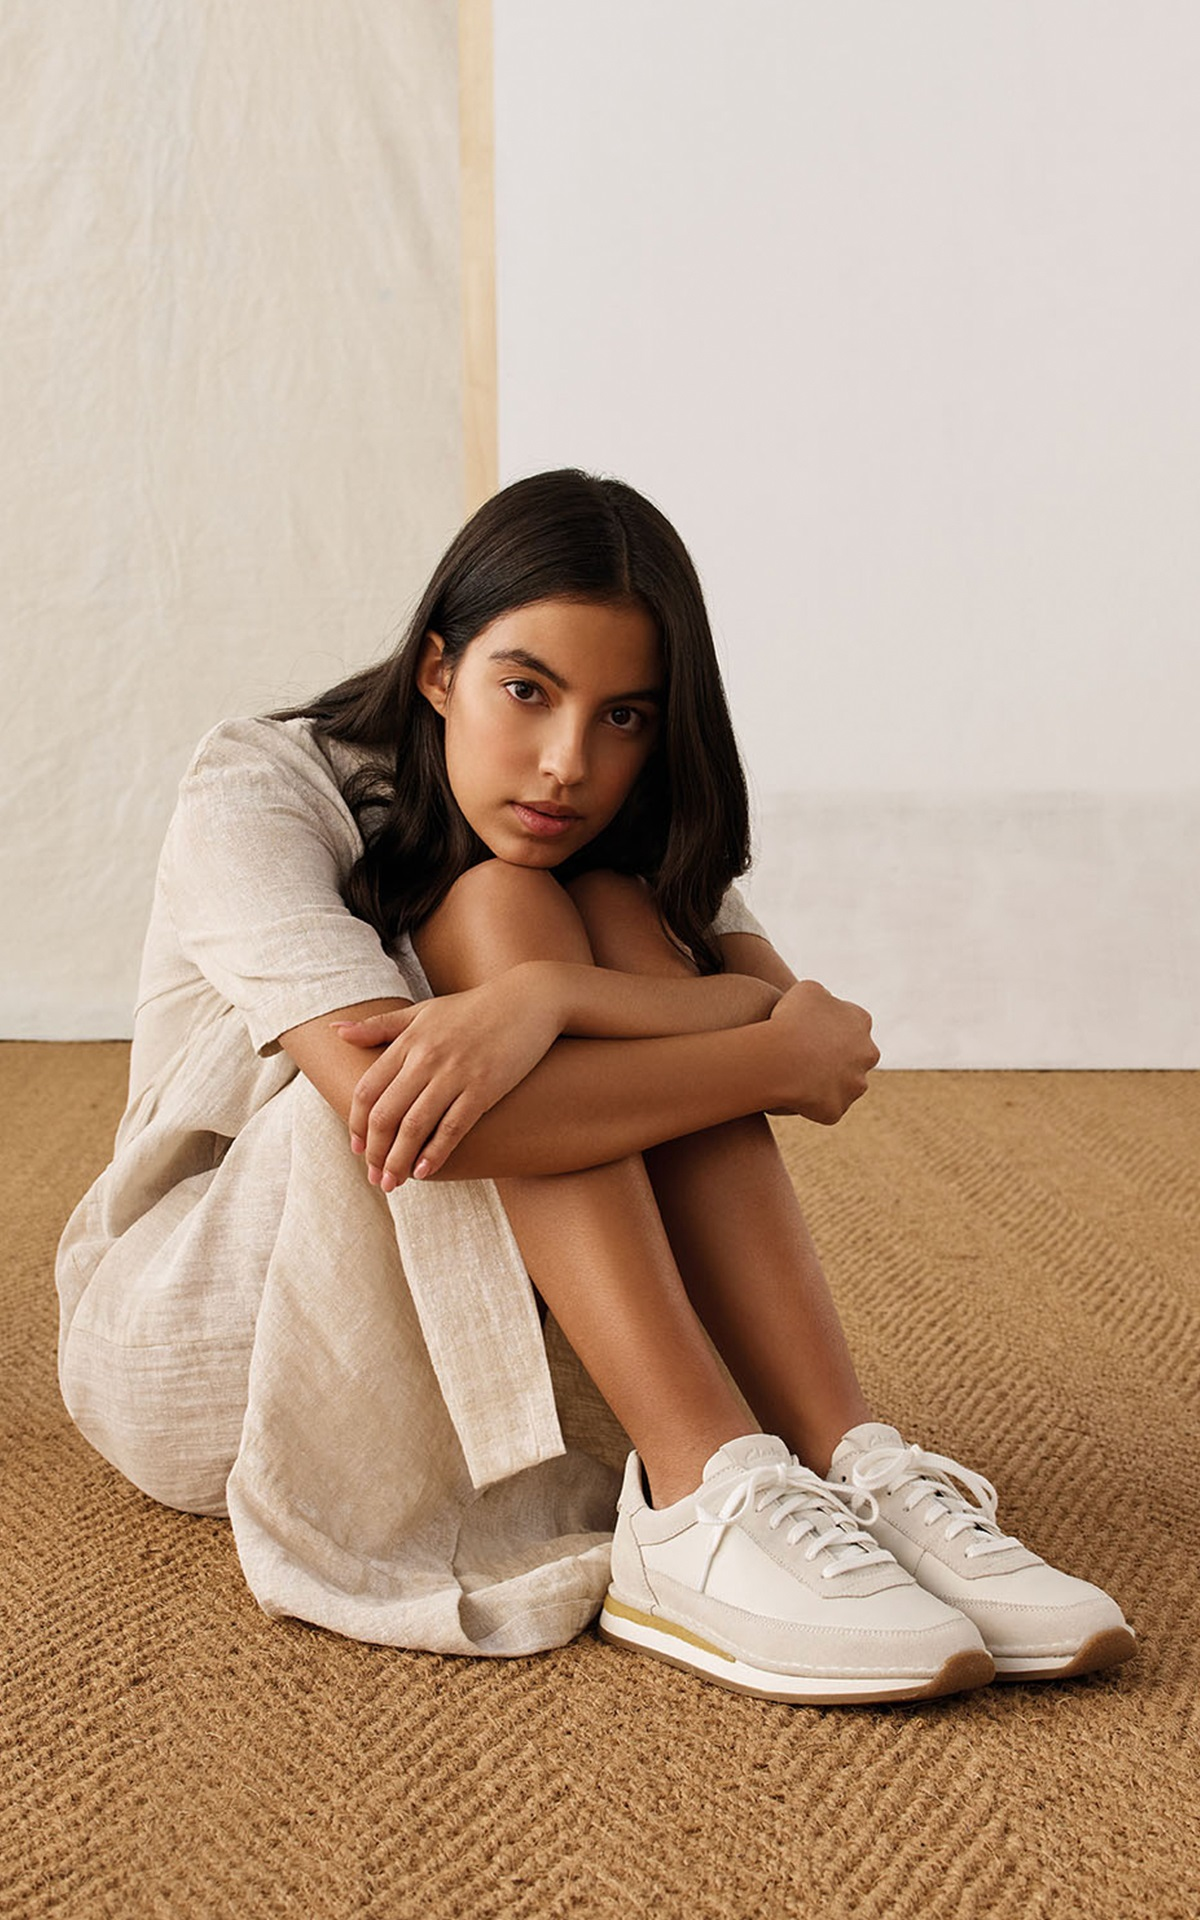 Girl on the floor with a clarks sneakers